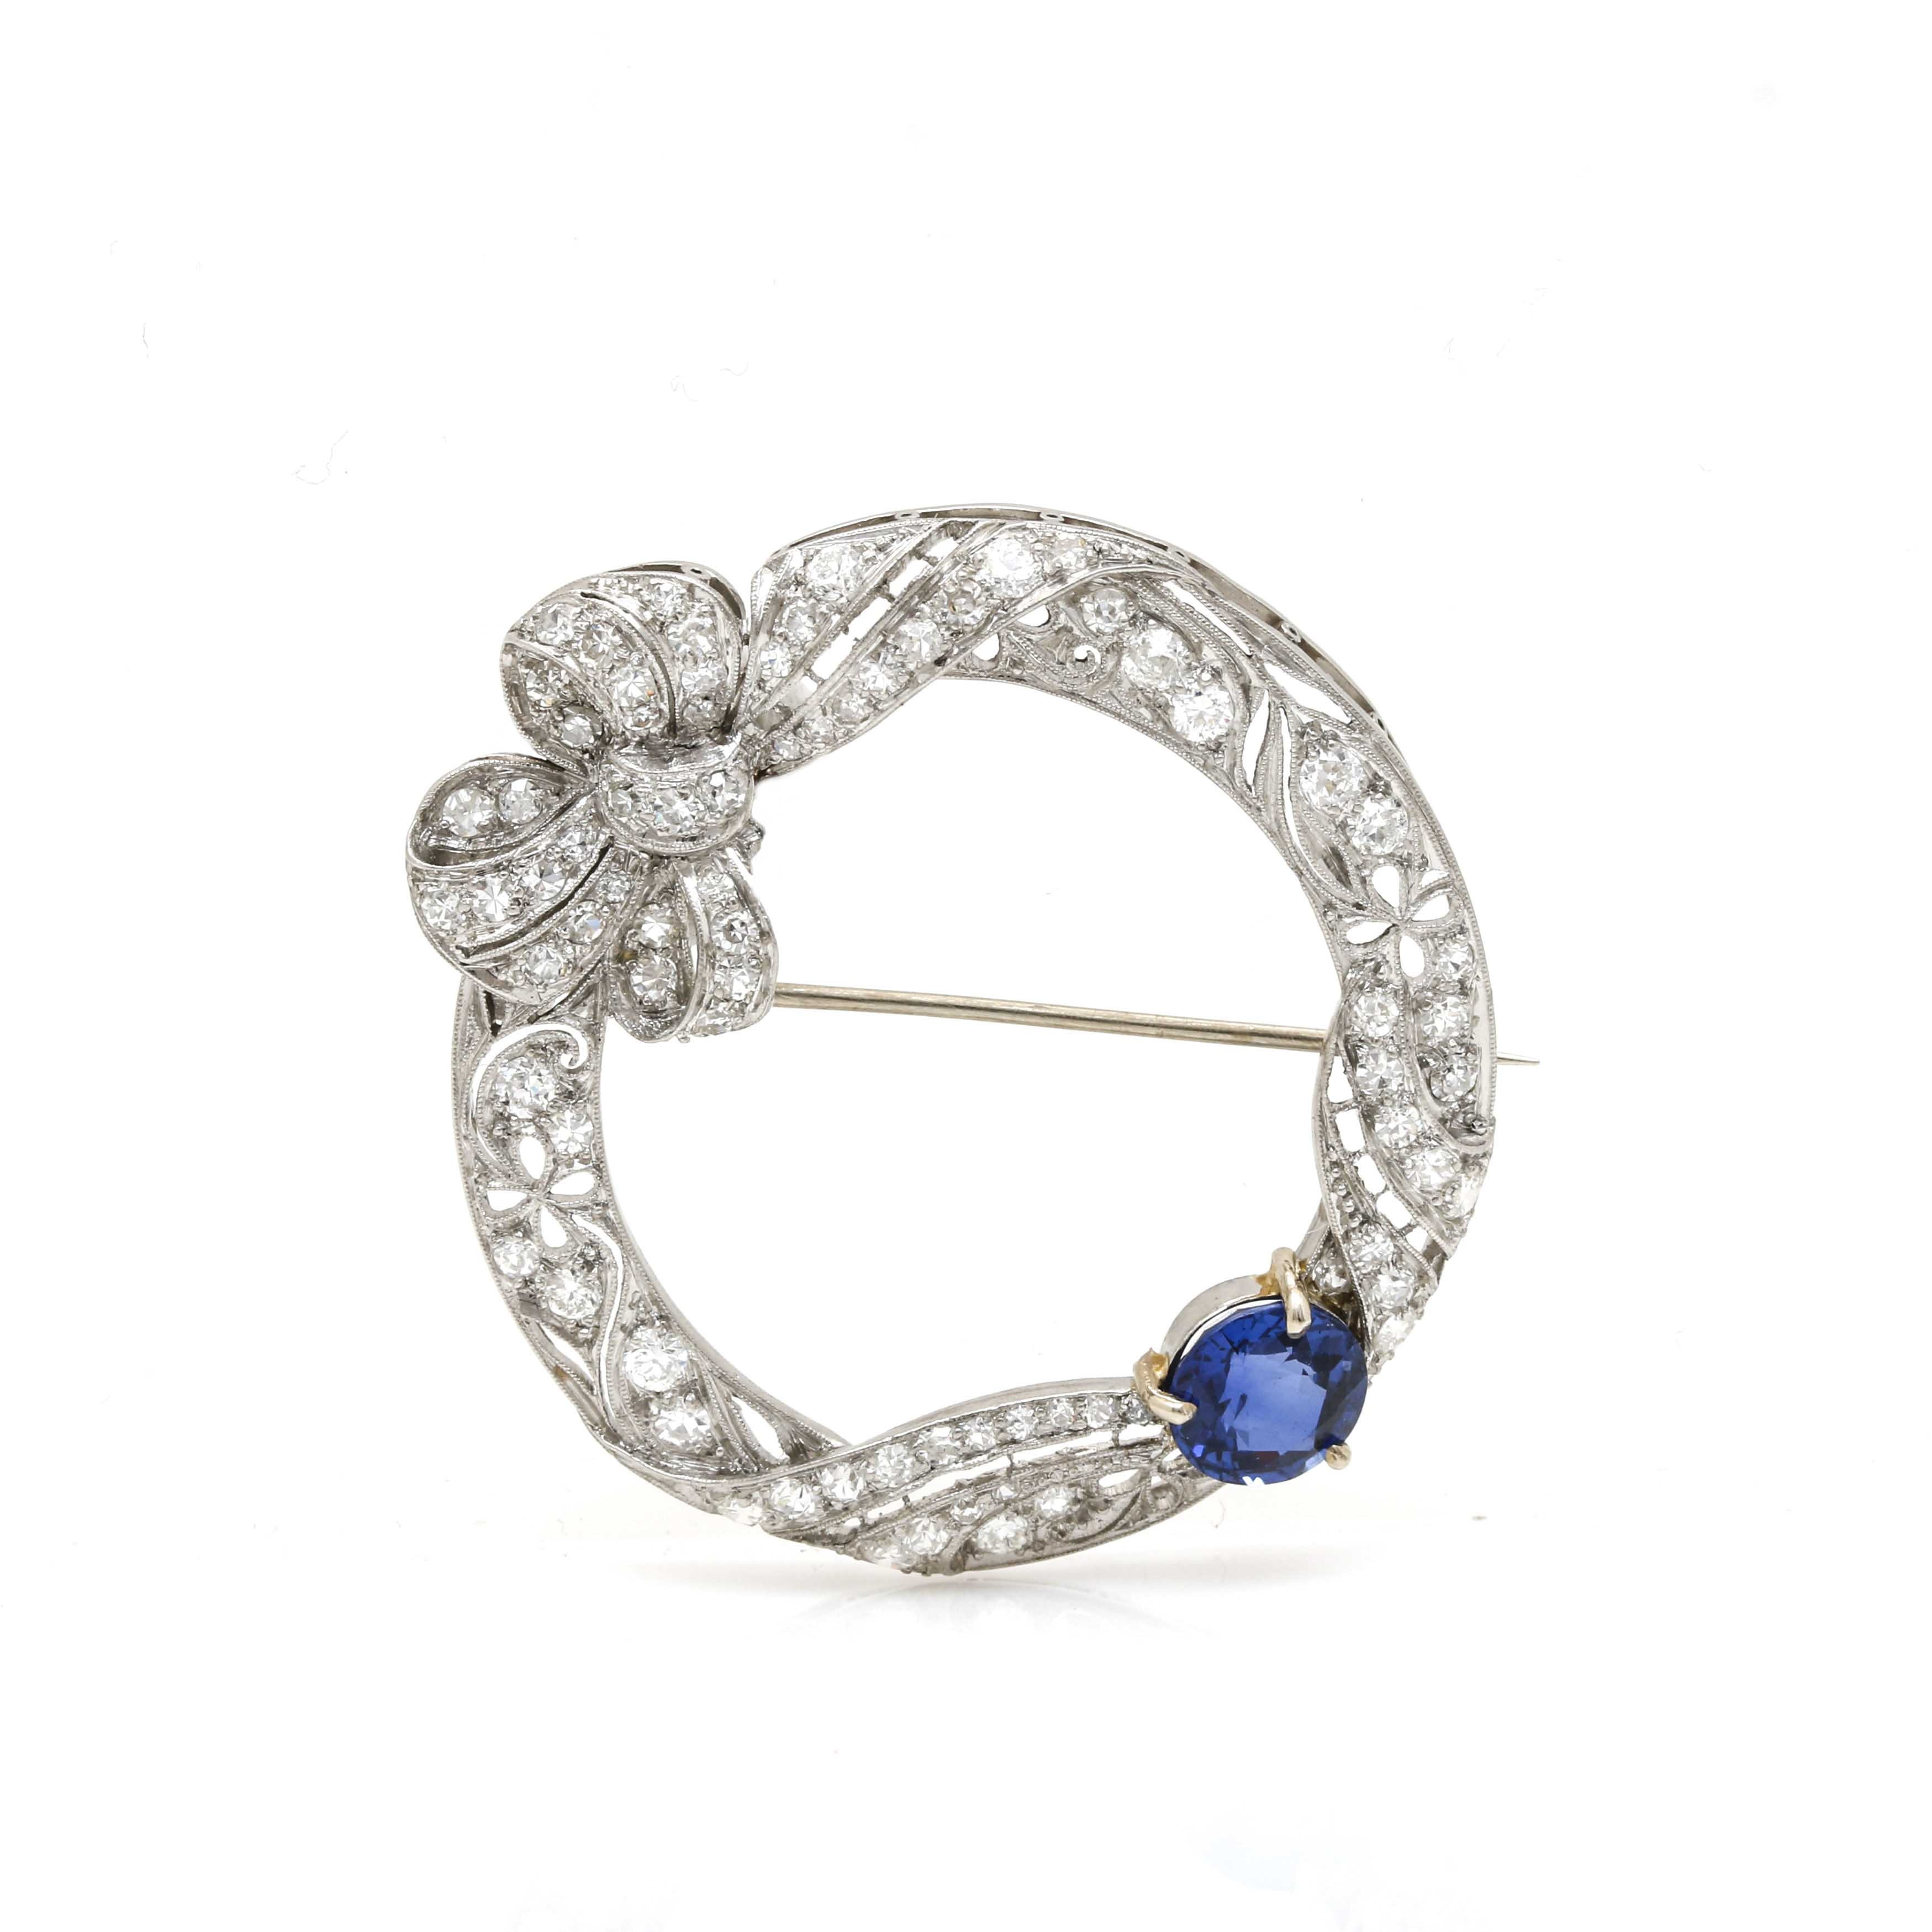 Belle Epoque Platinum Synthetic Sapphire and 1.62 CTW Diamond Brooch